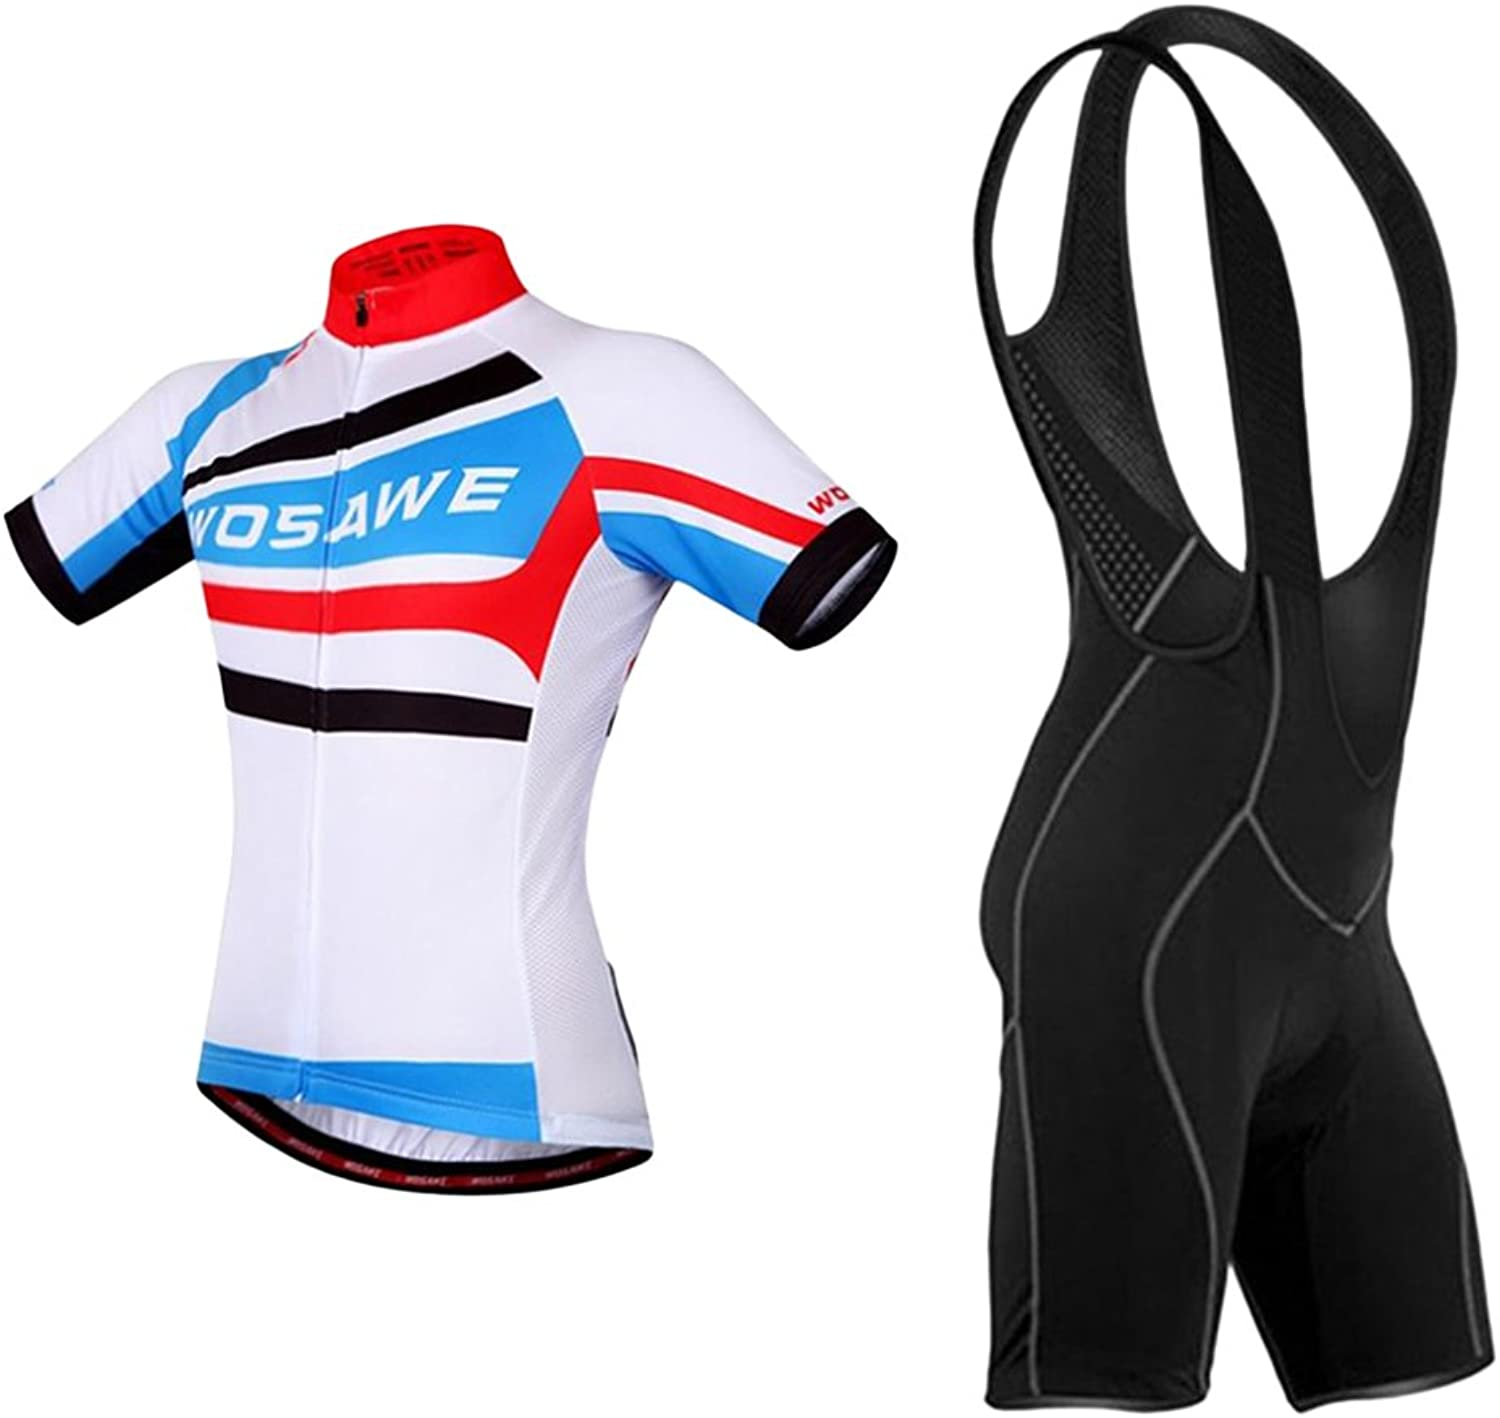 MagiDeal Men's Cycling Jersey Set  Bicycle Short Sleeve Shirt Tops and 3D Padded Bib Shorts QuickDry Breathable